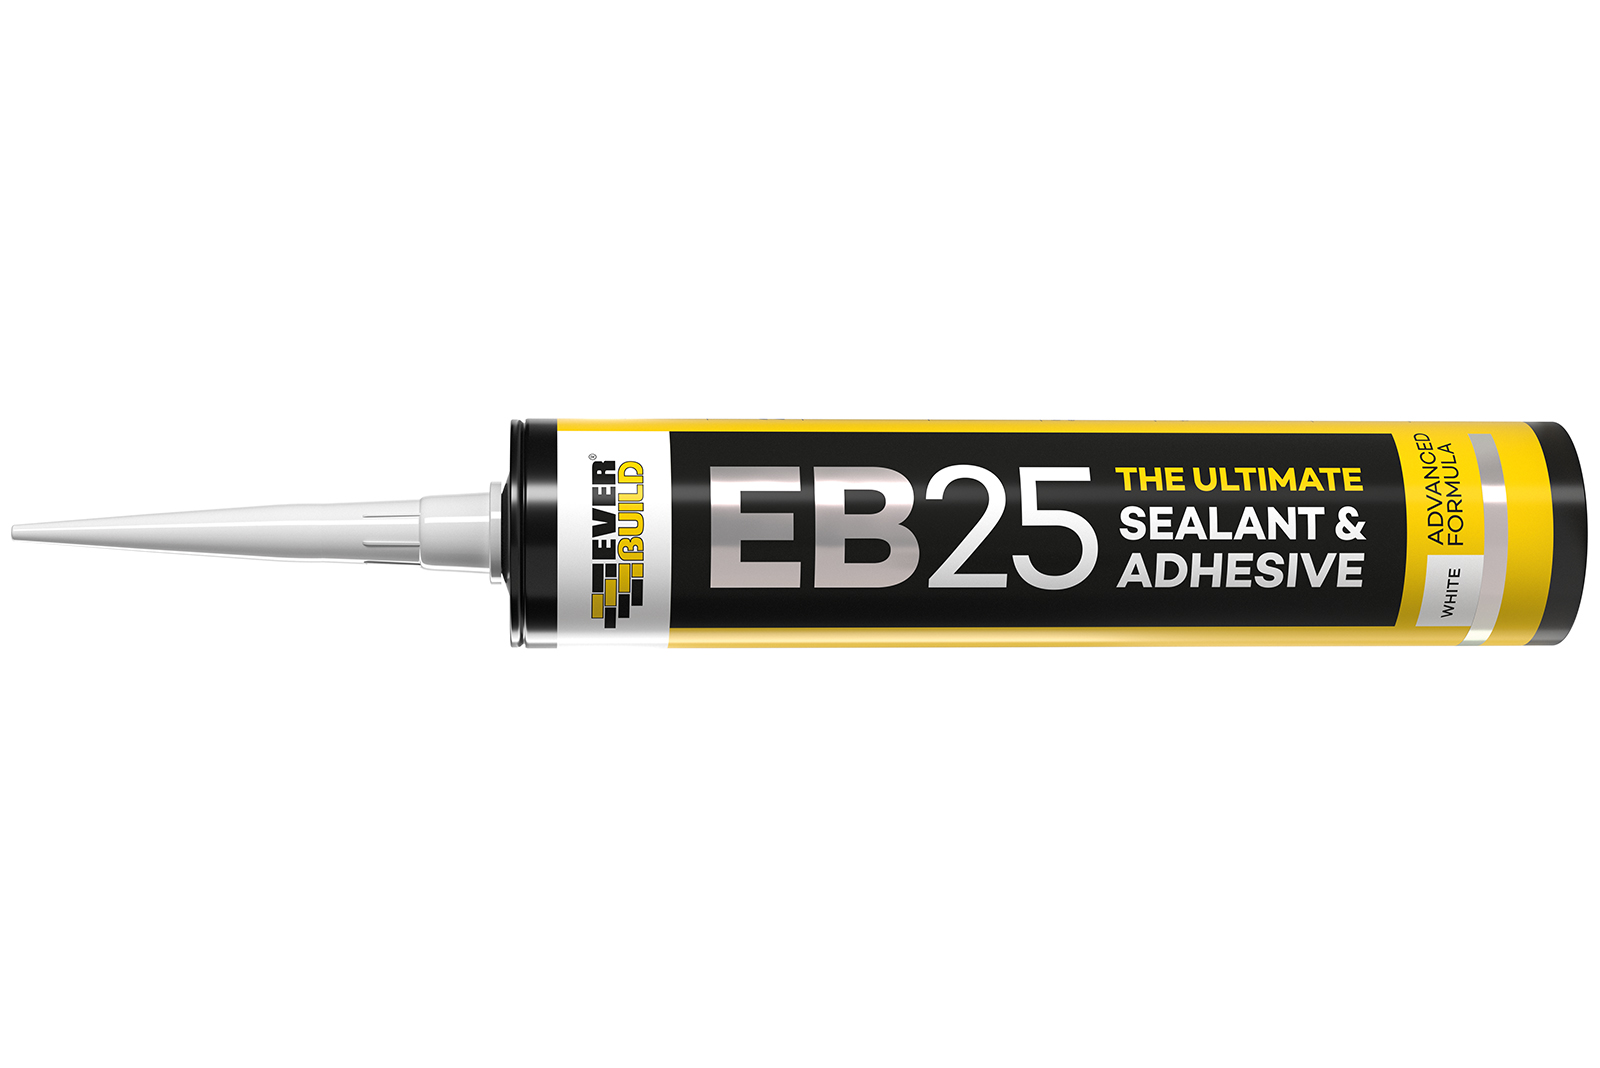 Everbuild celebrates 25 years with new product launch